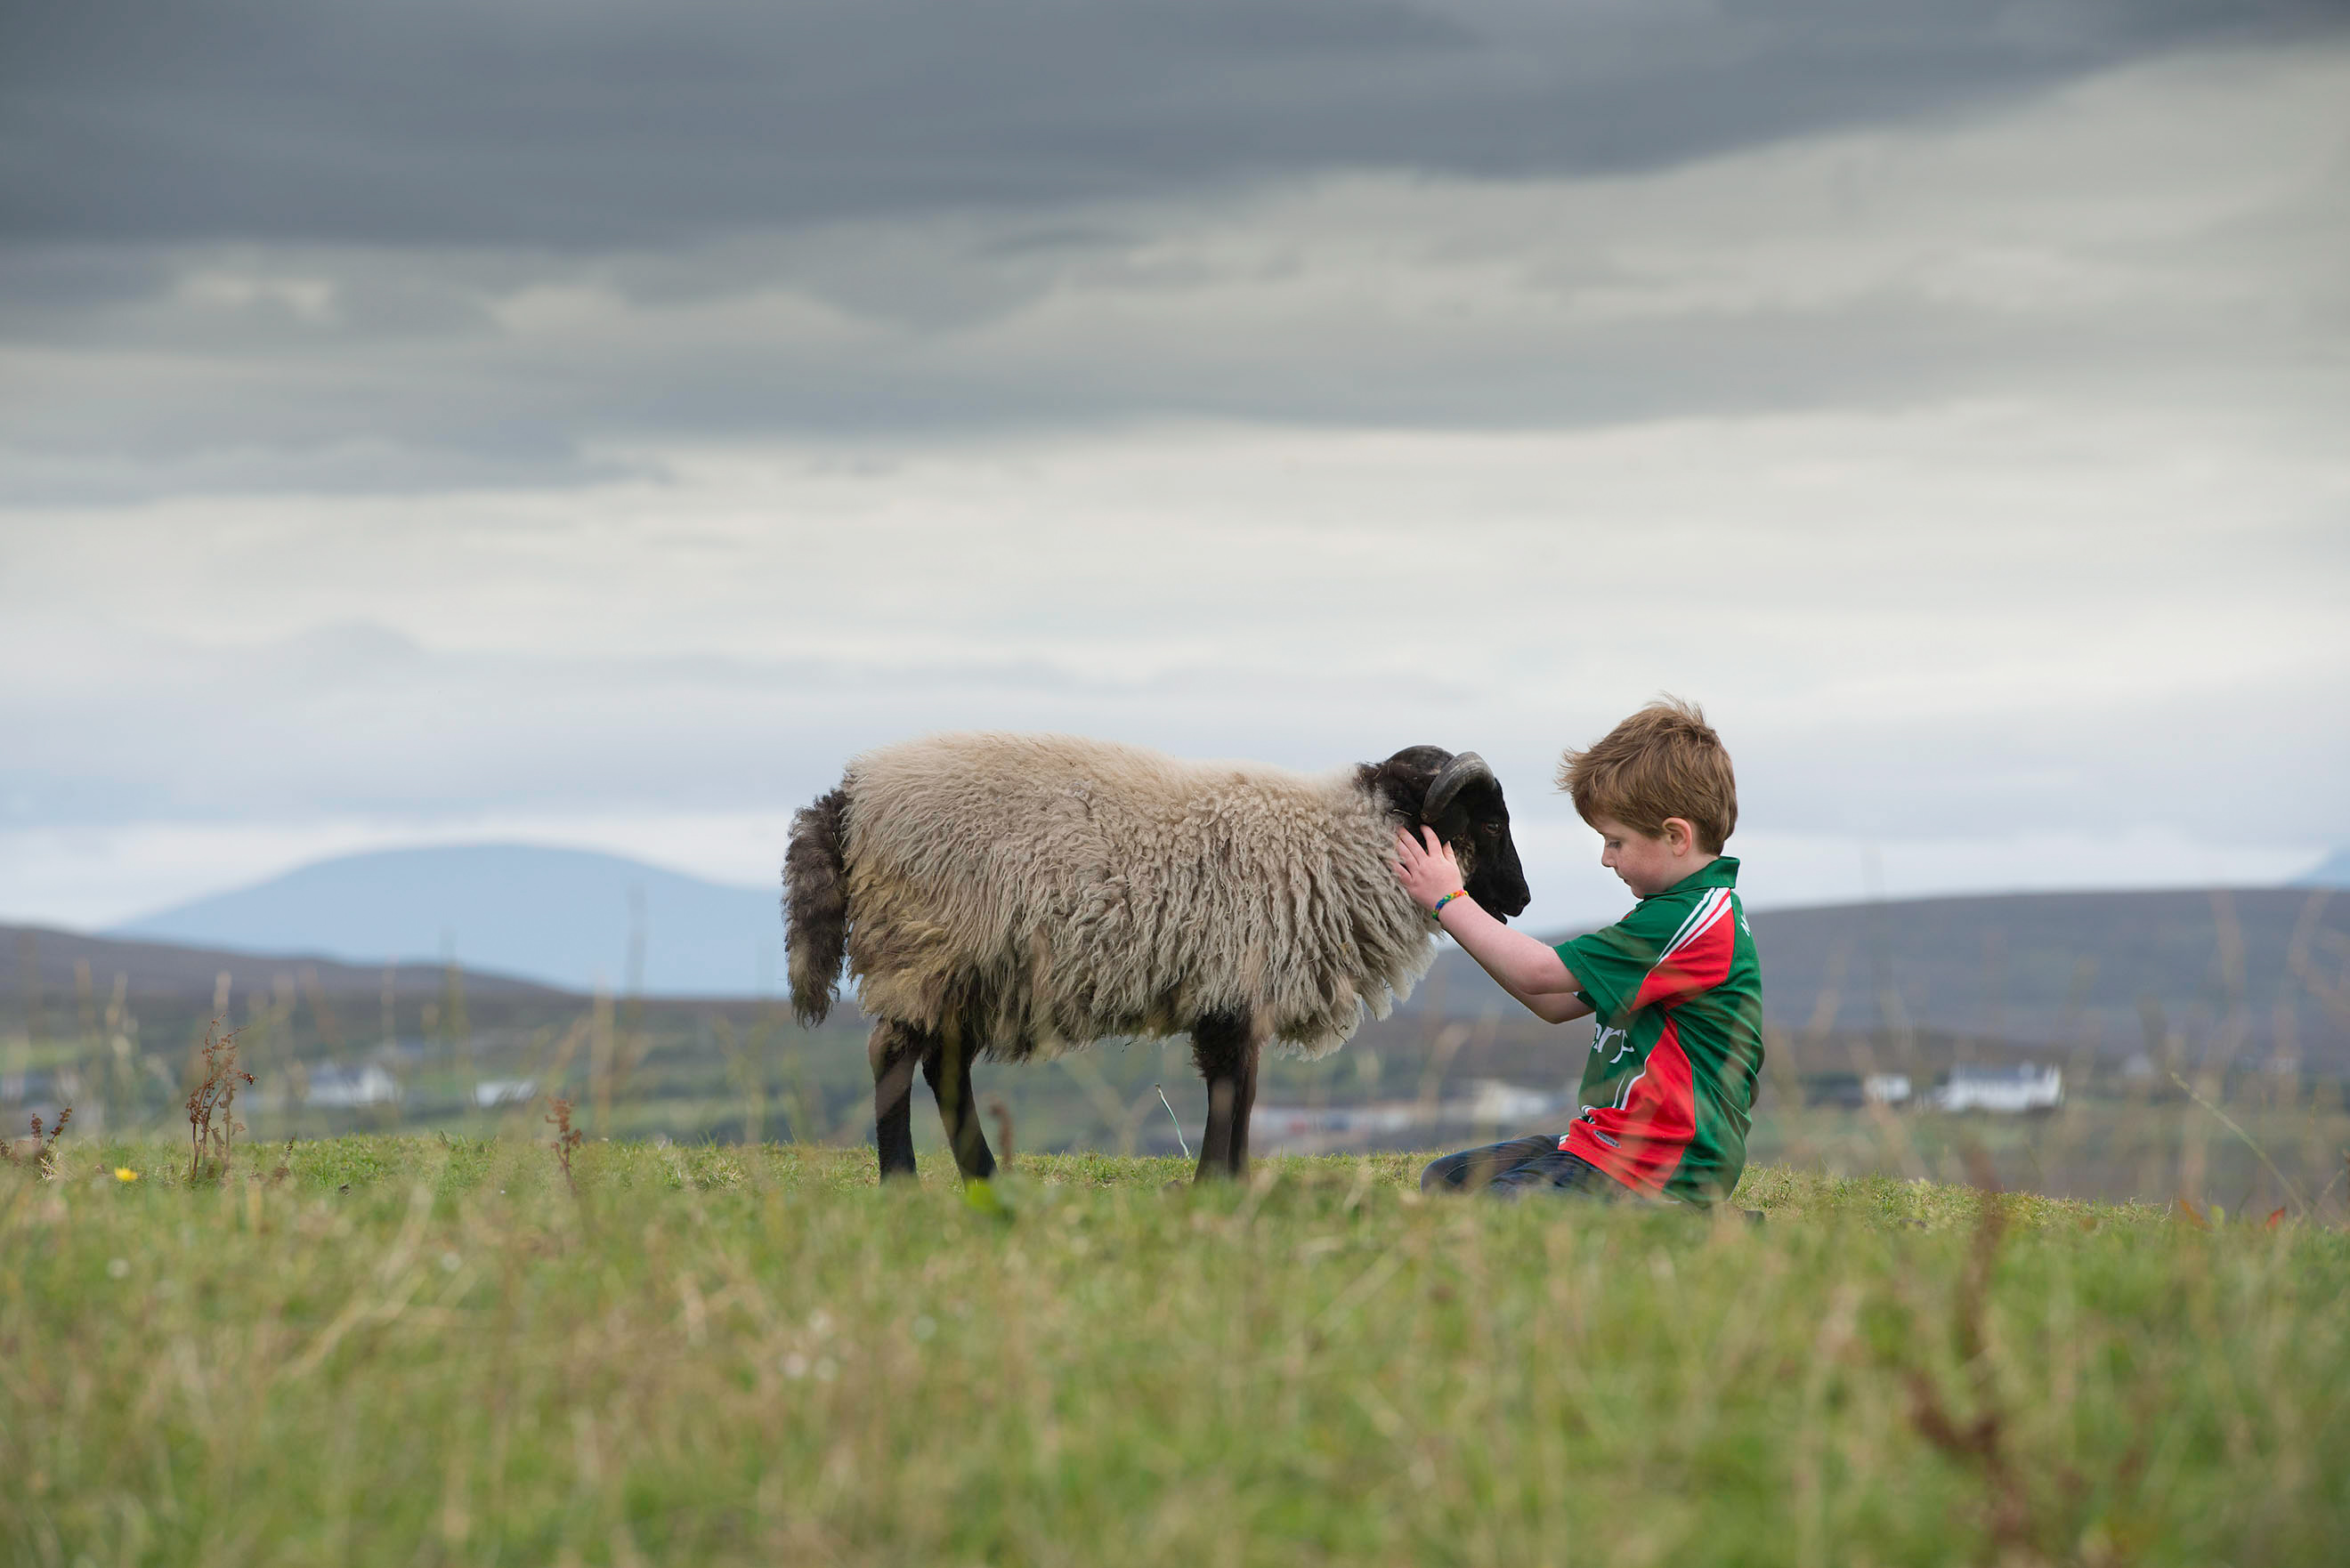 editorial-public-relations-corporate-photographer-mayo-irelandCalveysAchillMountainLamb171